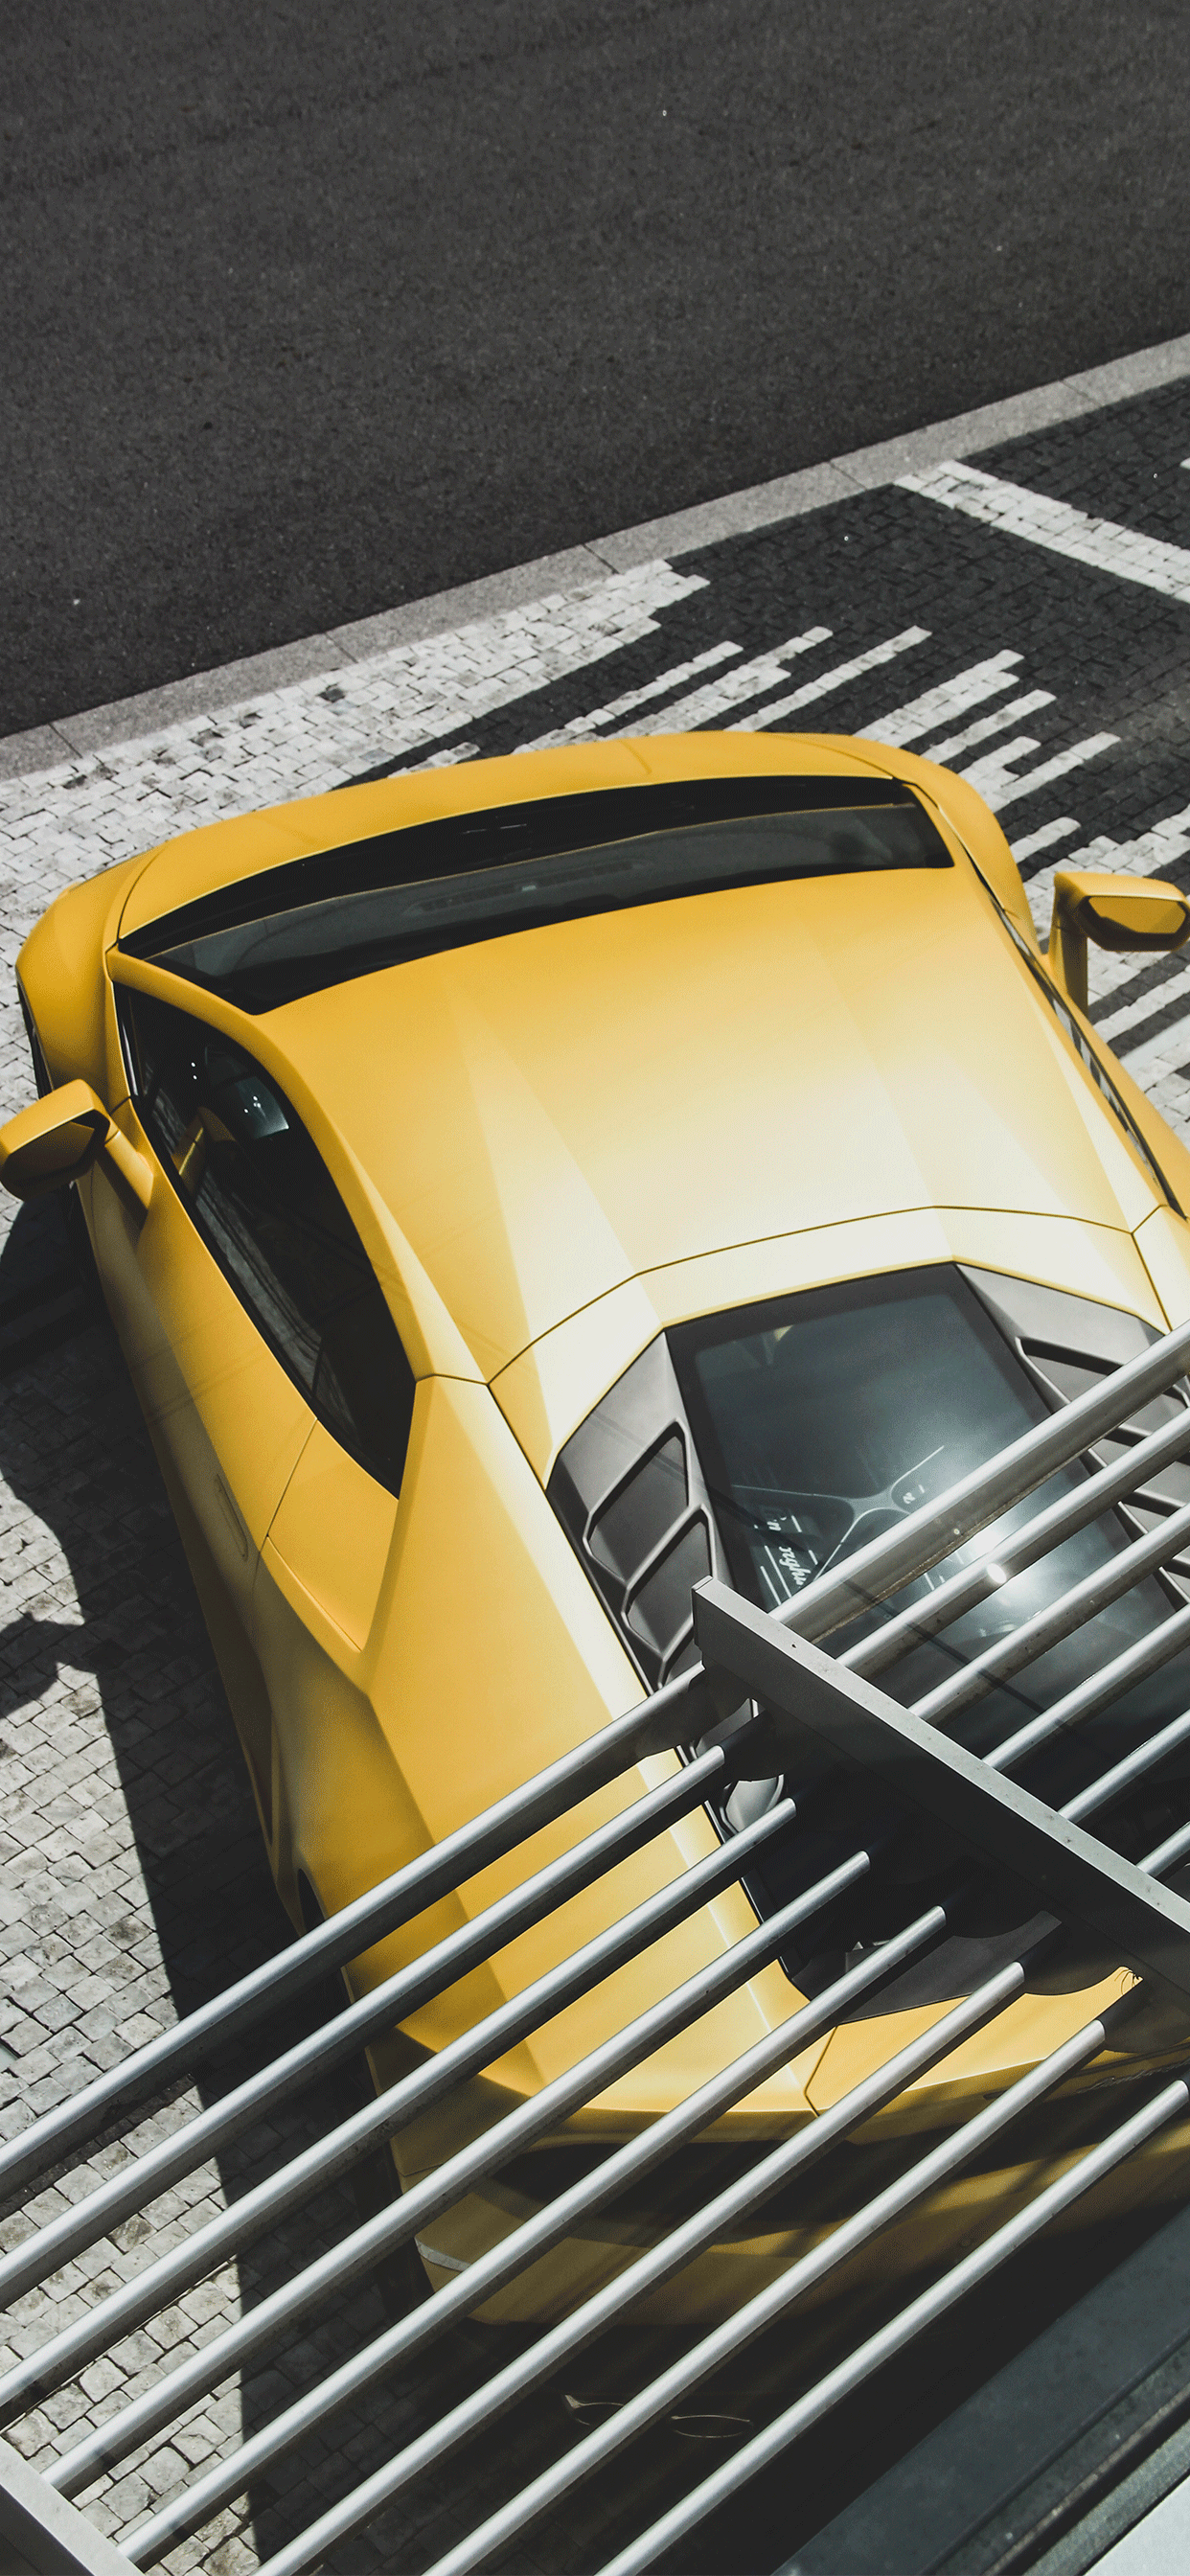 iPhone wallpaper Lamborghini yellow Fonds d'écran iPhone du 26/04/2019